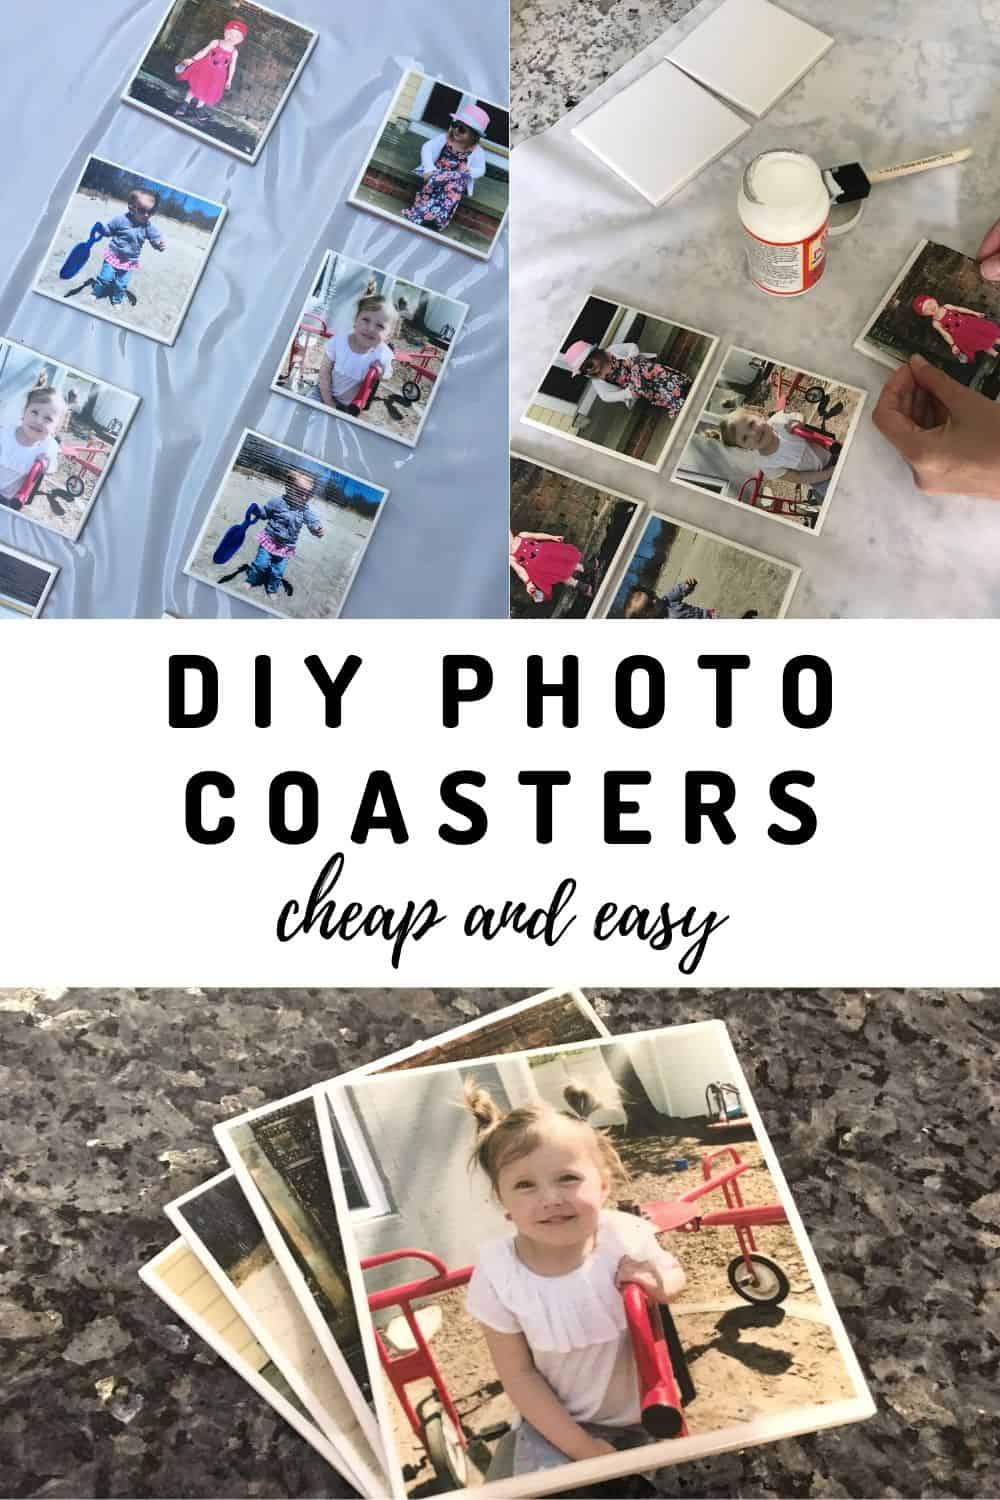 DIY photo coasters are the perfect homemade gift for Mother's Day, Father's Day or any other holiday!